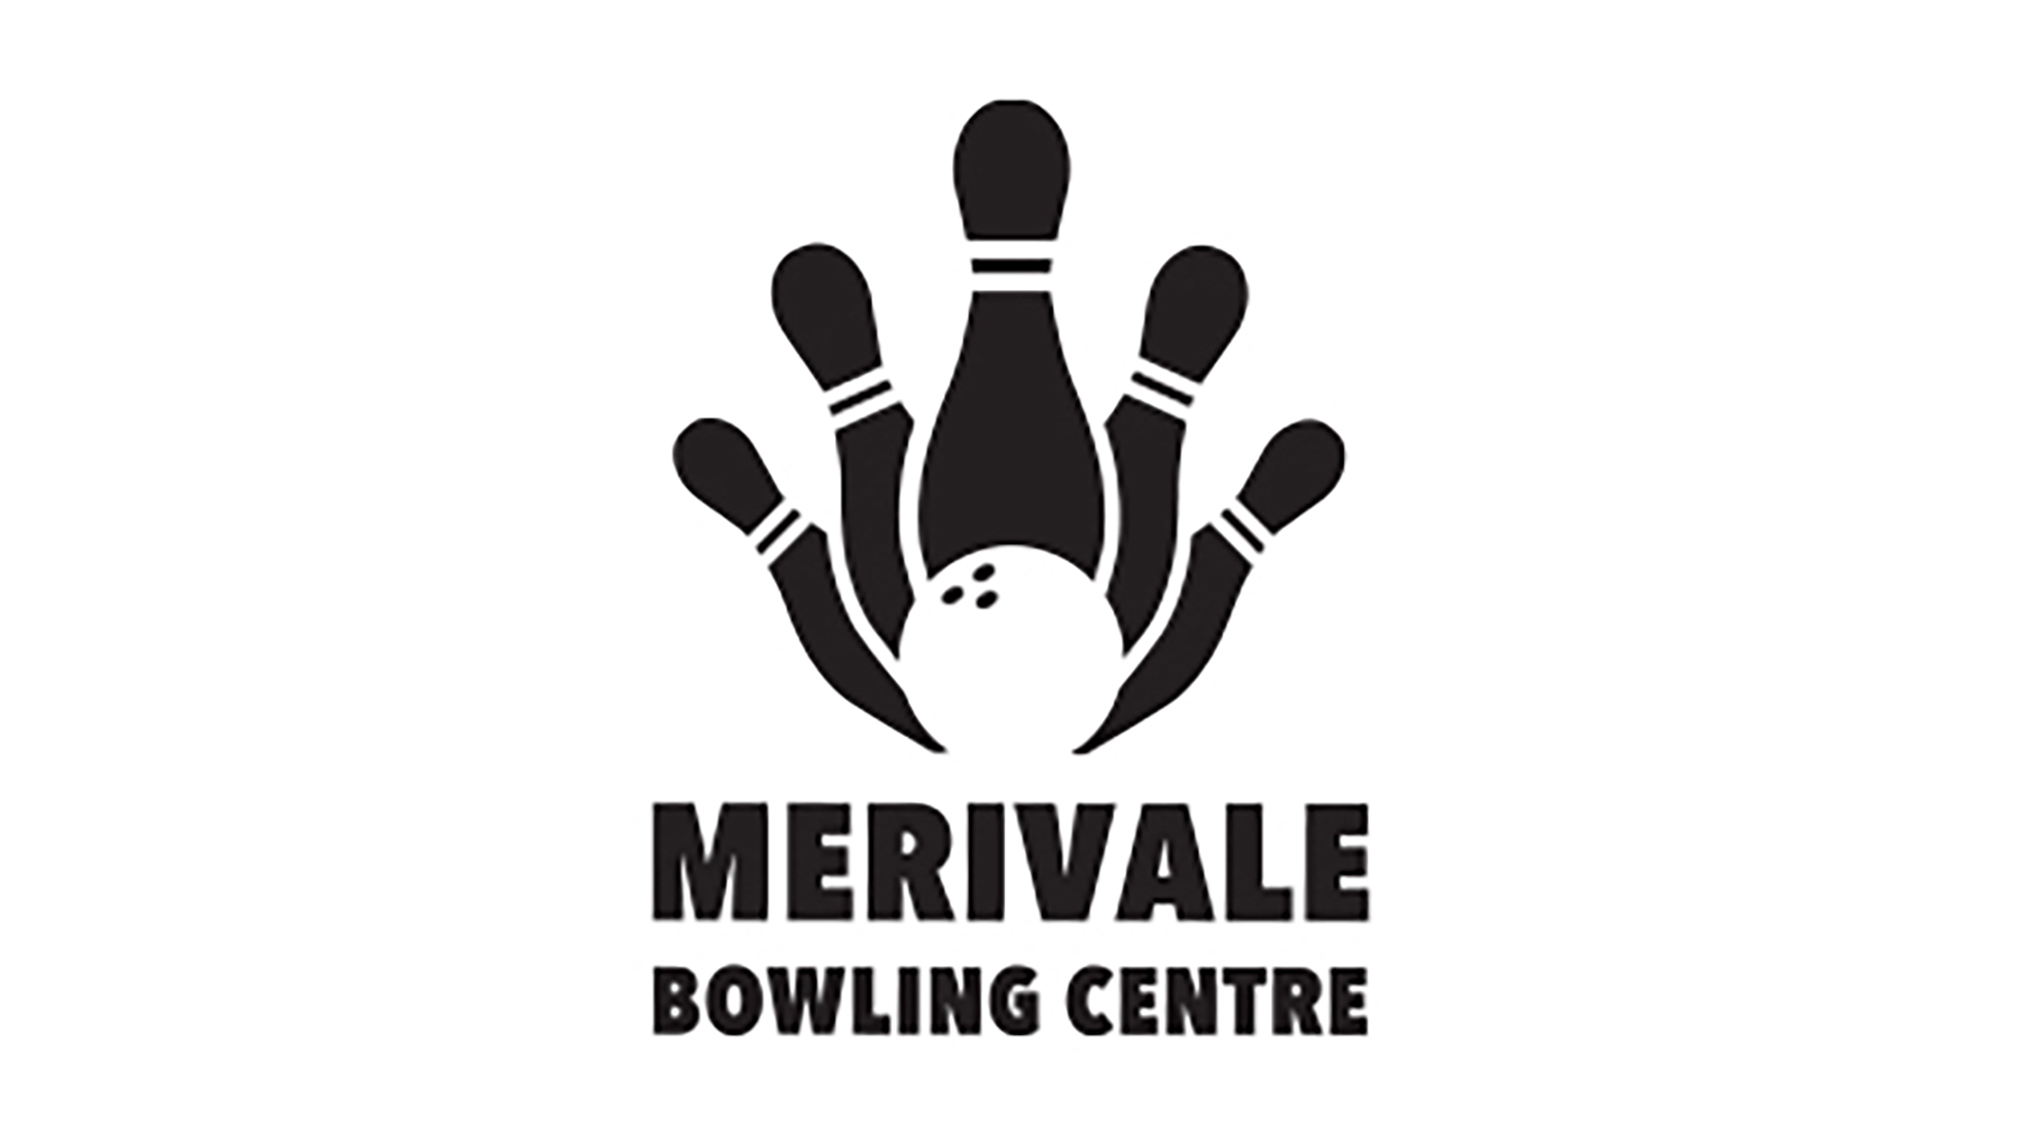 The colours chosen in this logo design were kept simple, black and white. As Merivale Bowling Centre is a glow-in-the-dark bowling alley, having a black and white logo will make their logo interact with the glow in the dark feature. For example, a white logo will glow when in a black light. Introducing a monochromatic design helps create a greater sense of professionalism than a more colourful ensemble would.